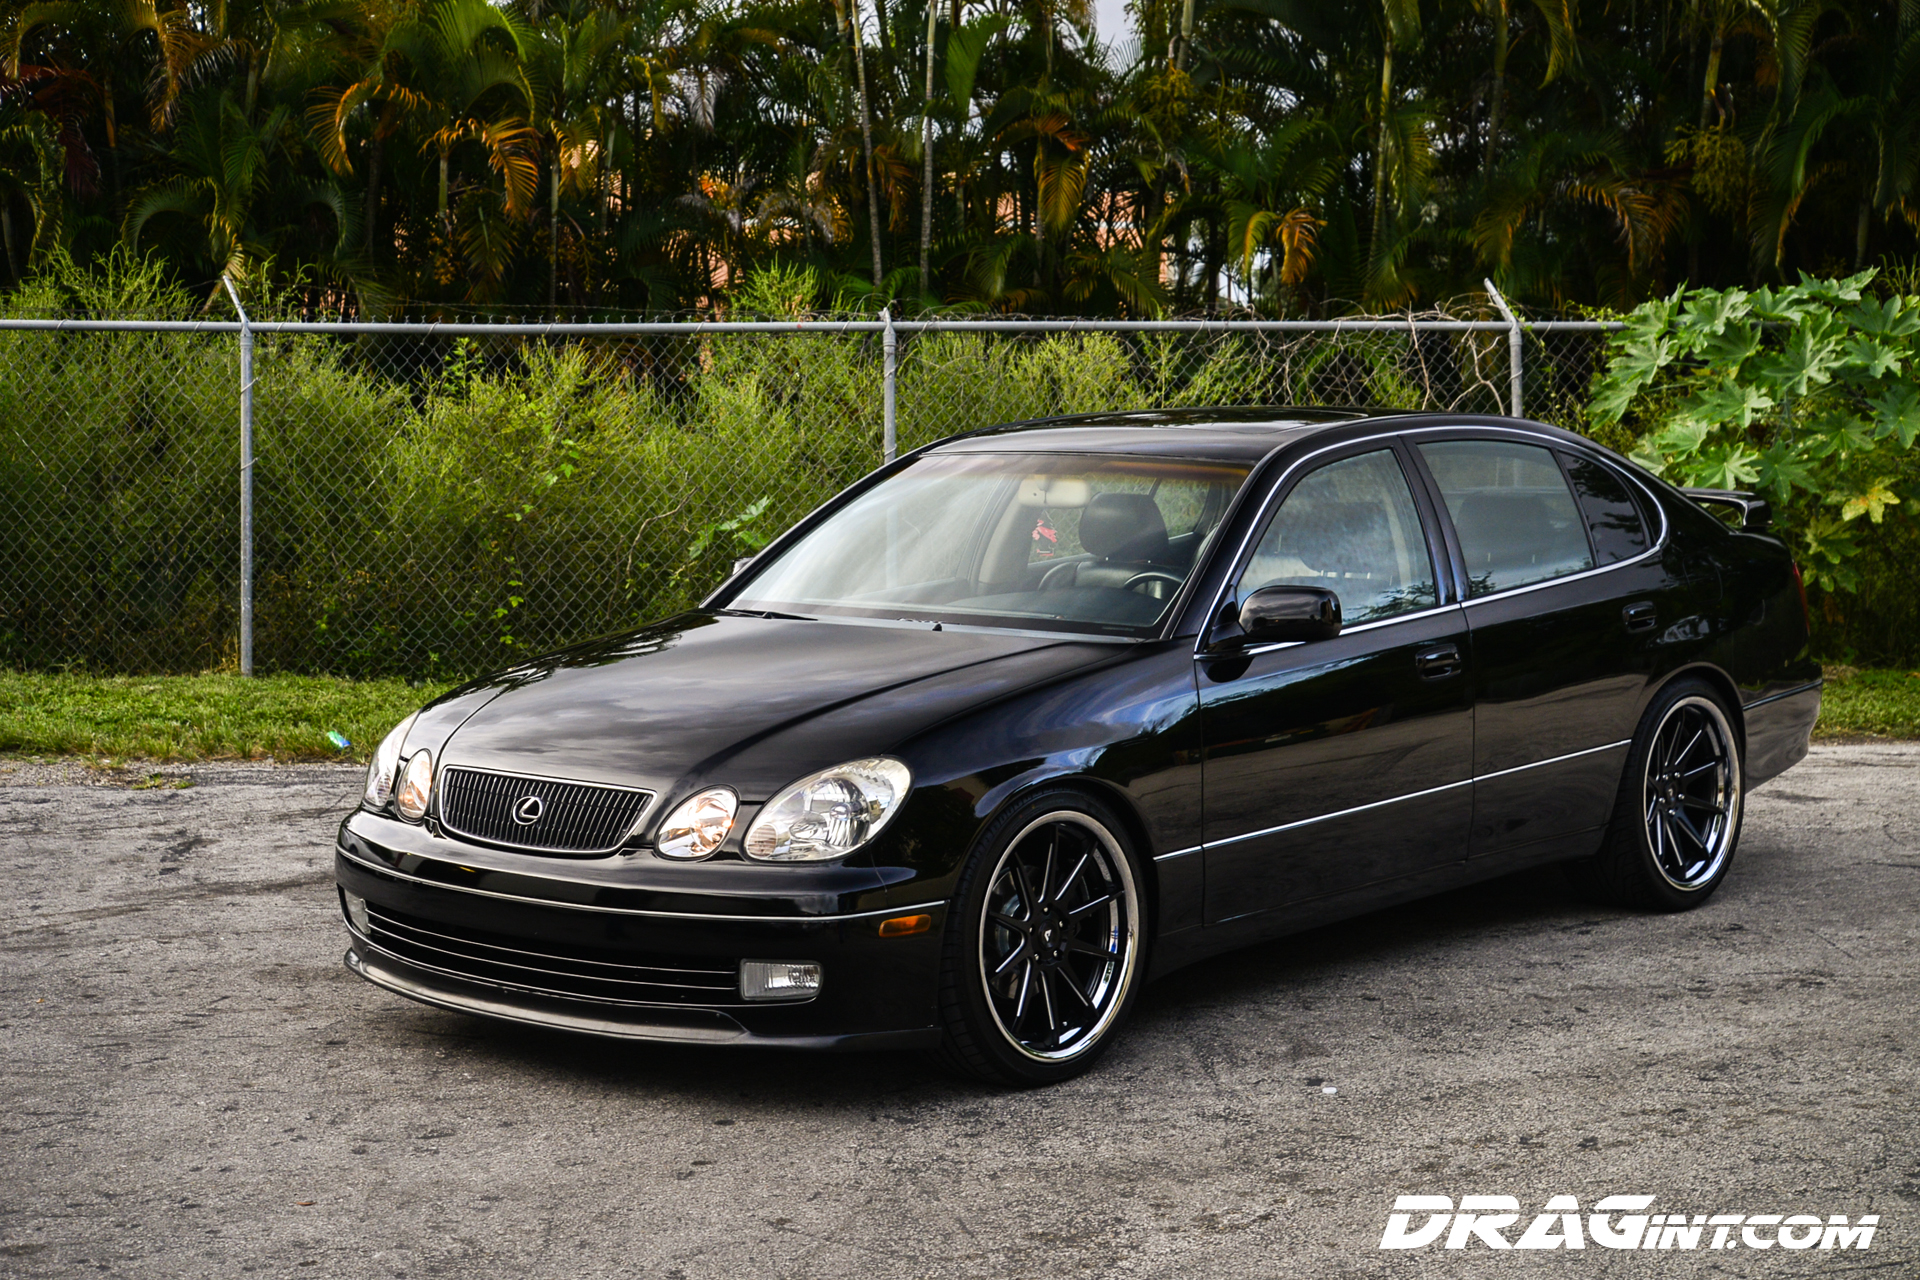 For Sale : ANOTHER ONE U2013 GS300 With Twin Turbo 2JZ